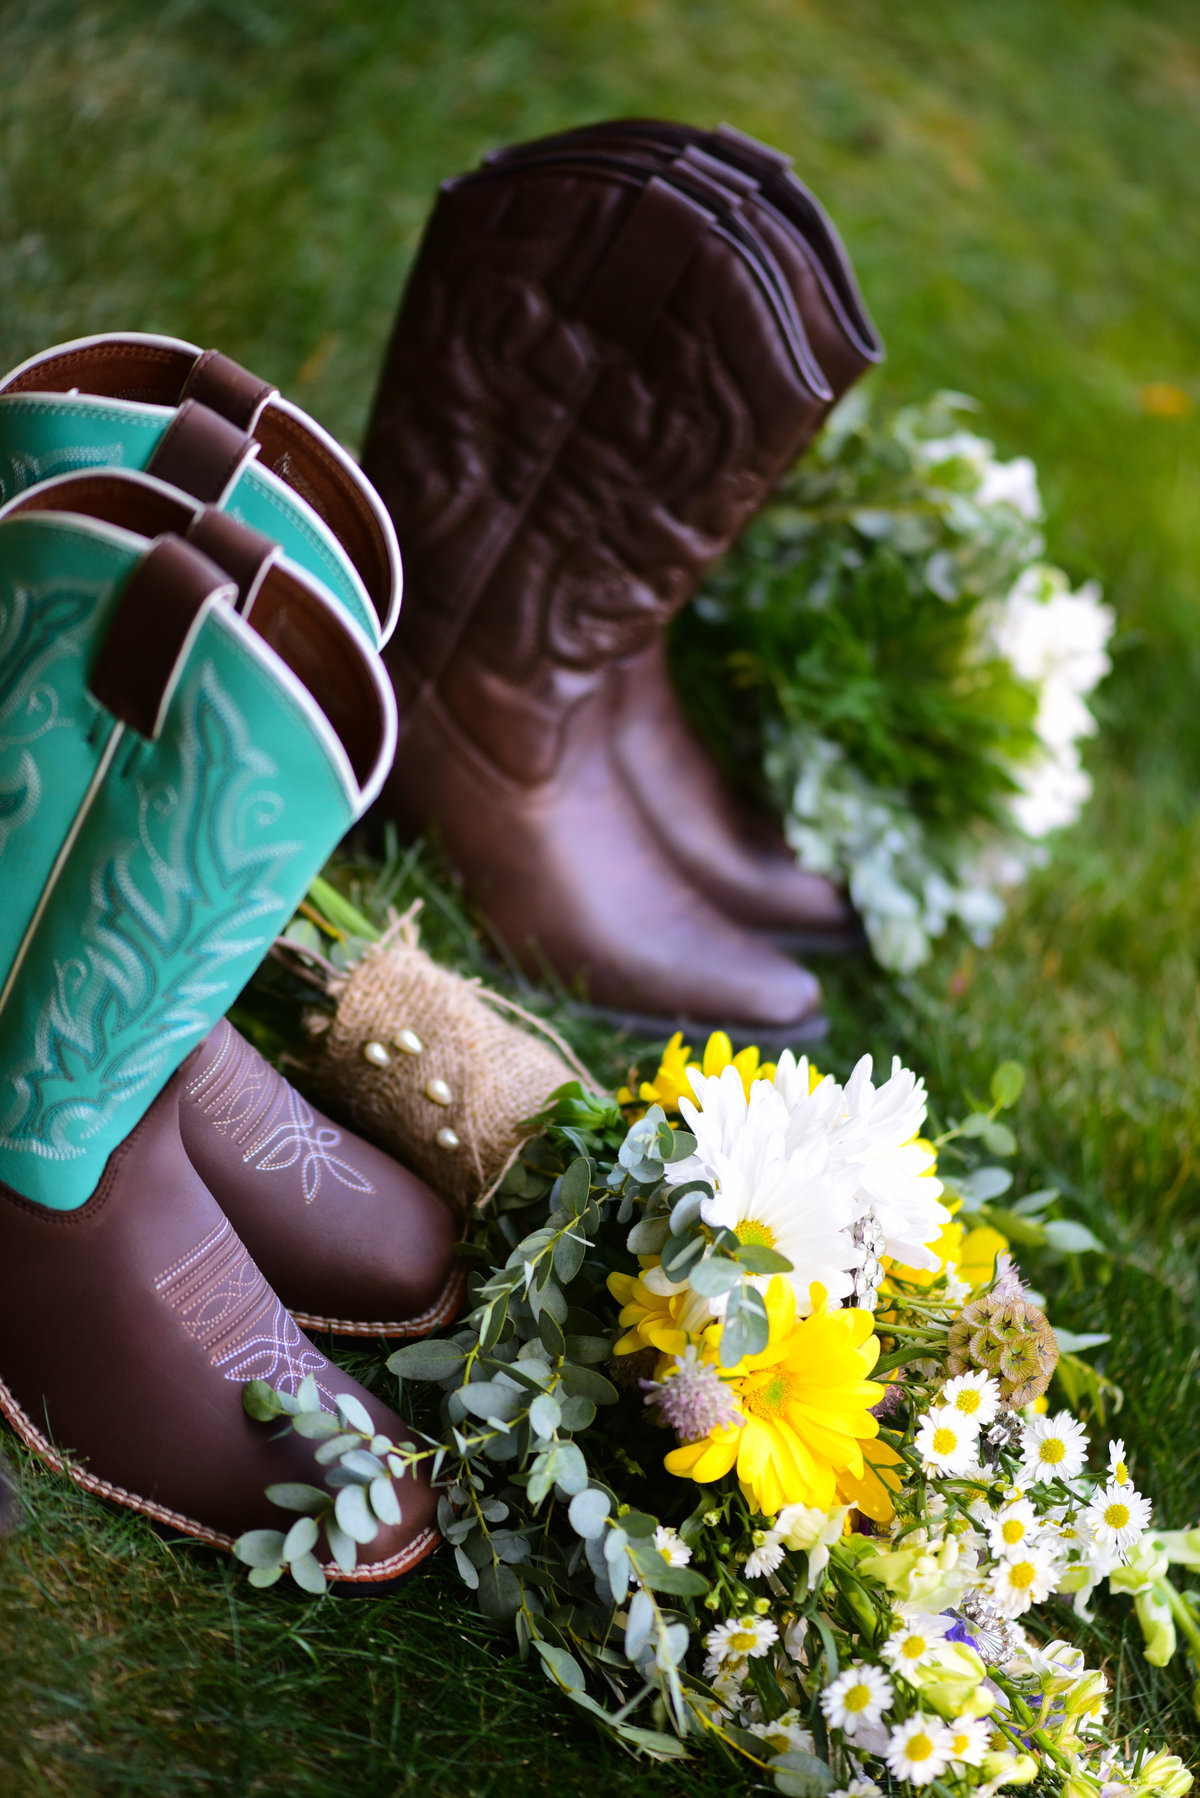 Longfellows Restaurant, Saratoga Springs, NY, Frye cowgirl boots, brown and jade green